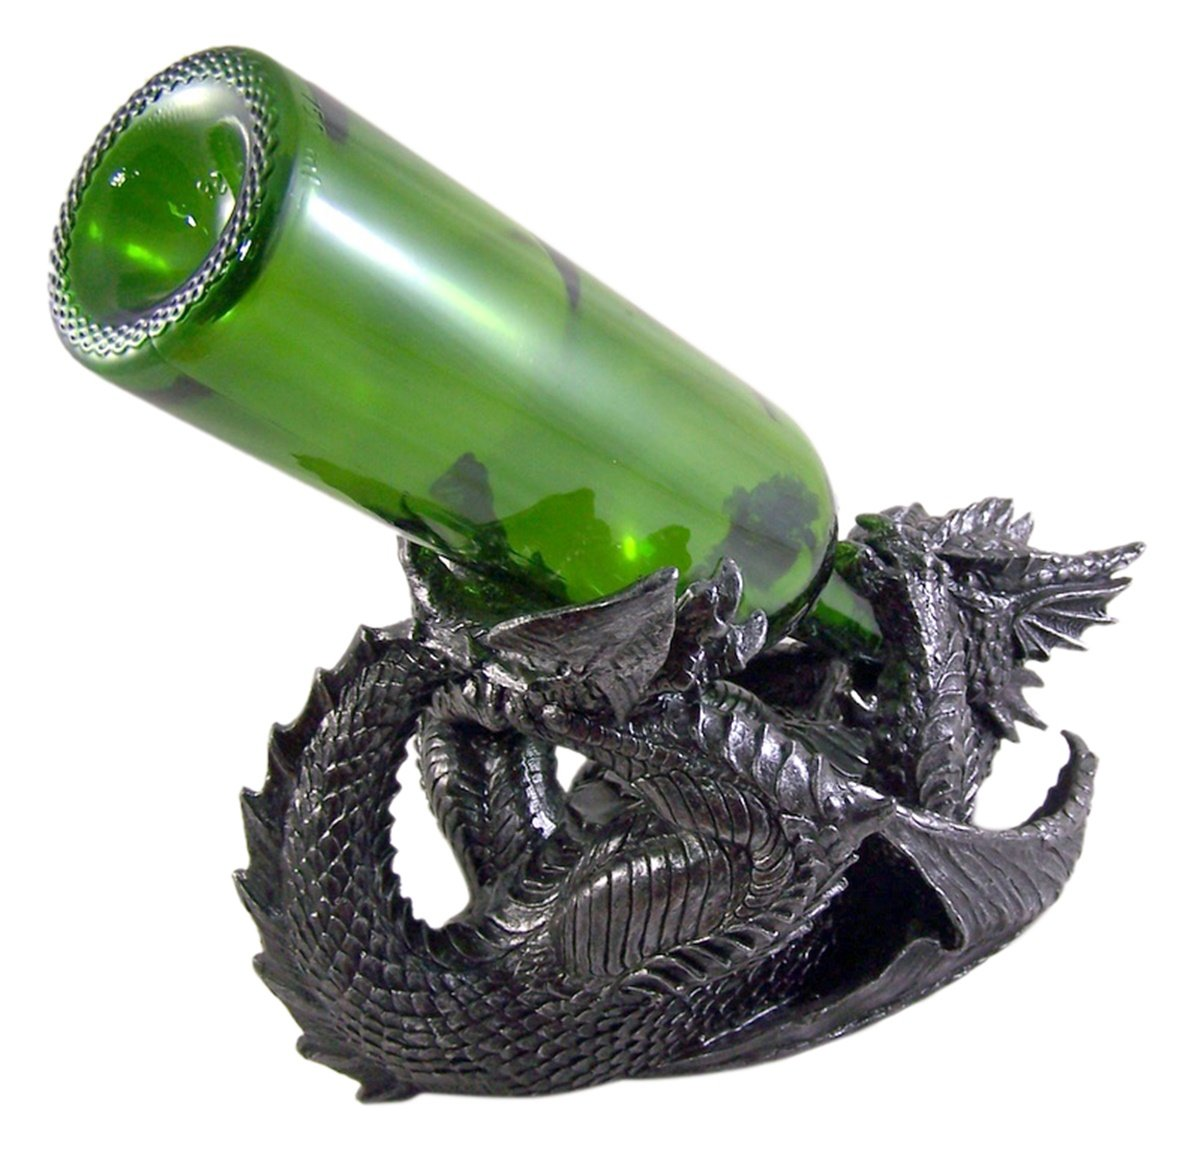 Gothic Dragon Wine Bottle Holder 6 3/4 Inch by Dragon Wine Display (Image #2)